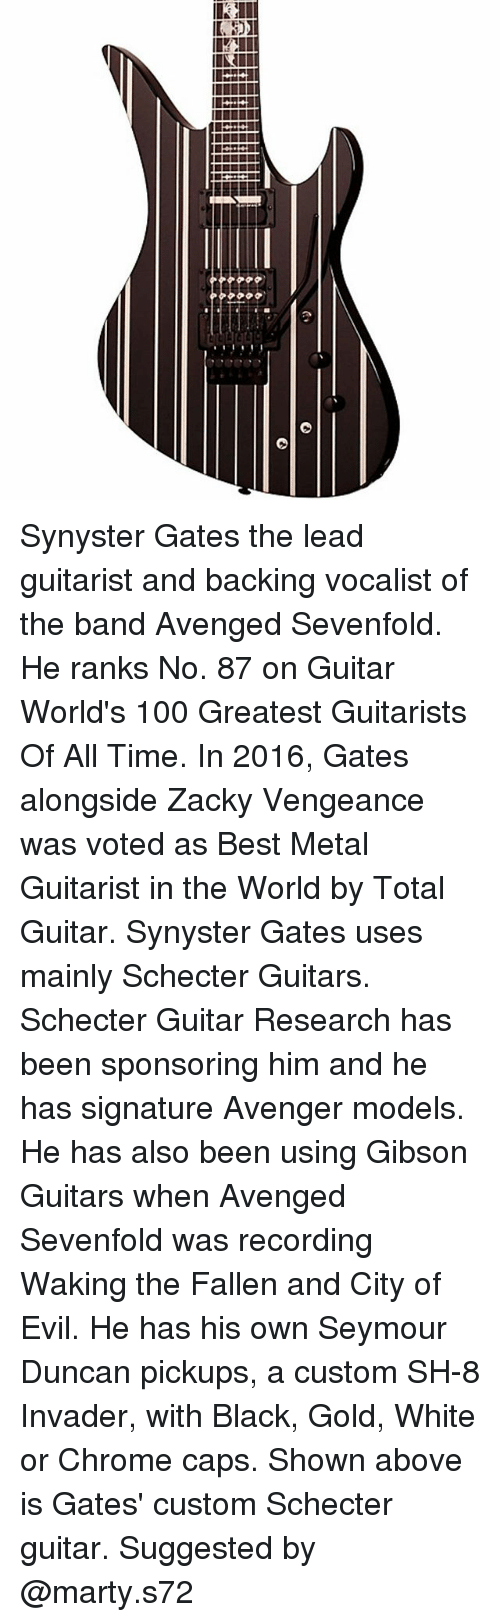 Anaconda, Chrome, and Memes: Synyster Gates the lead guitarist and backing vocalist of the band Avenged Sevenfold. He ranks No. 87 on Guitar World's 100 Greatest Guitarists Of All Time. In 2016, Gates alongside Zacky Vengeance was voted as Best Metal Guitarist in the World by Total Guitar. Synyster Gates uses mainly Schecter Guitars. Schecter Guitar Research has been sponsoring him and he has signature Avenger models. He has also been using Gibson Guitars when Avenged Sevenfold was recording Waking the Fallen and City of Evil. He has his own Seymour Duncan pickups, a custom SH-8 Invader, with Black, Gold, White or Chrome caps. Shown above is Gates' custom Schecter guitar. Suggested by @marty.s72